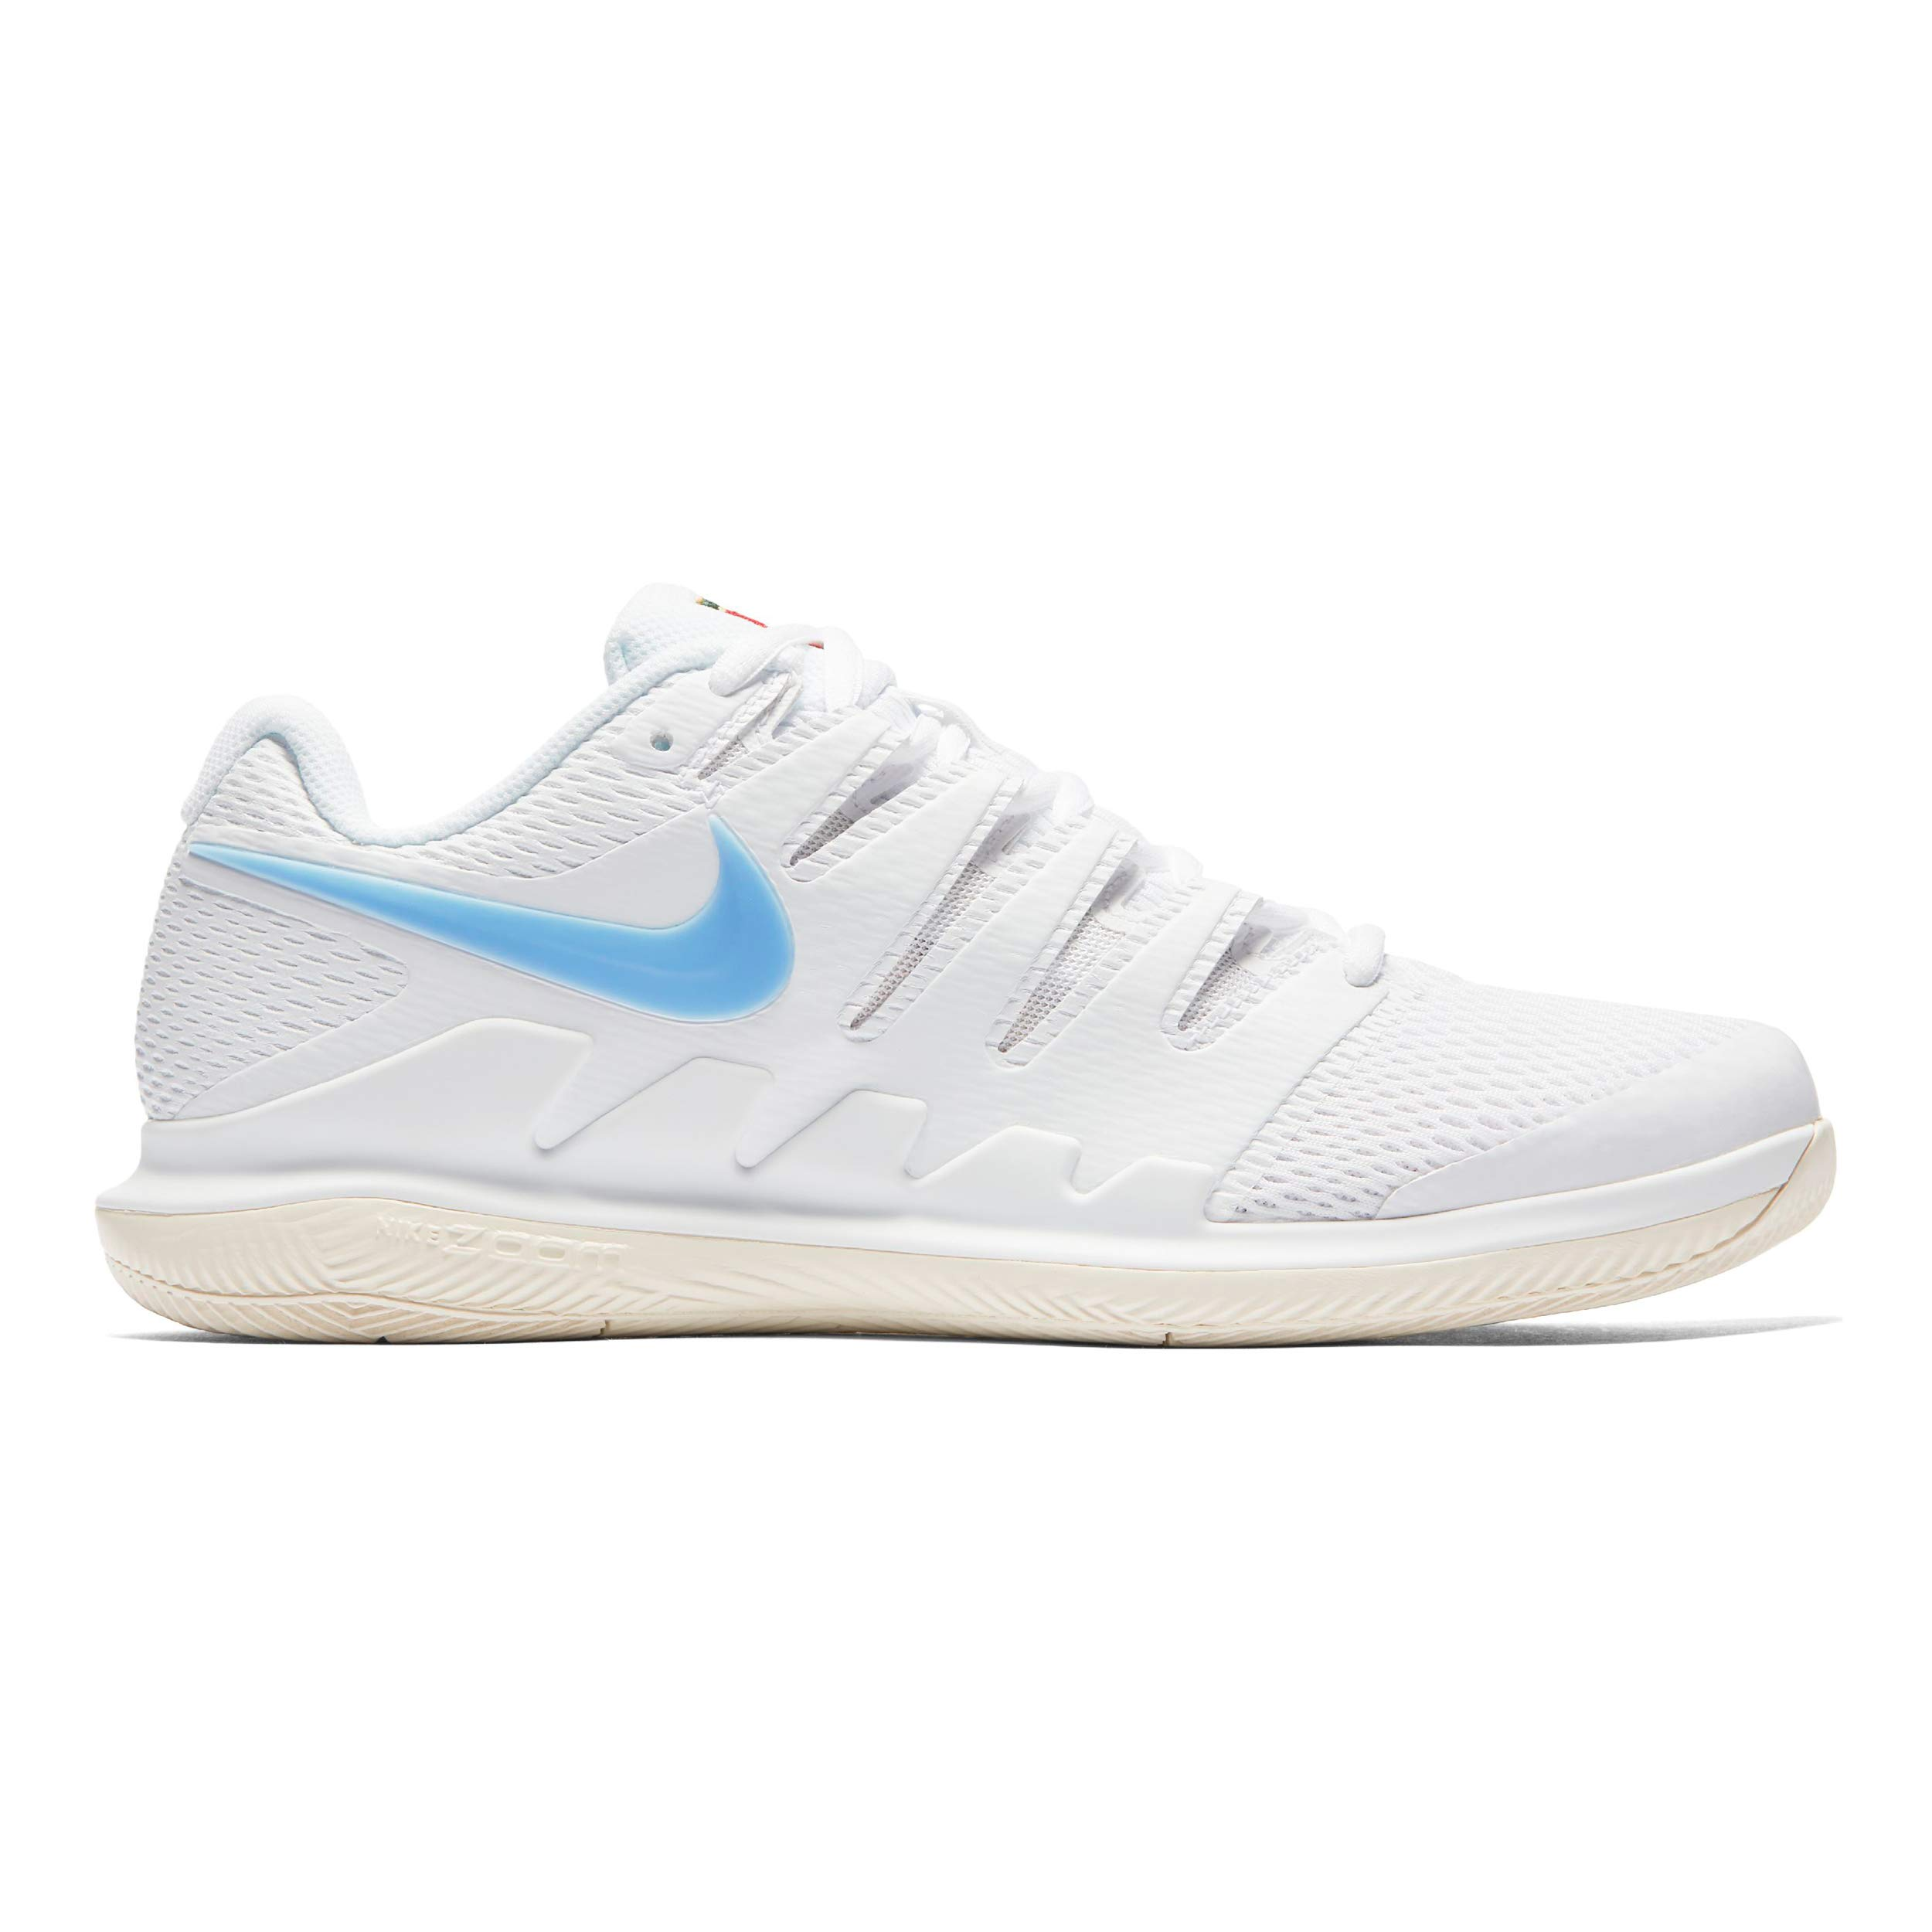 1d3f24bd1b03d Galleon - Nike Men's Zoom Vapor X Tennis Shoes (12.5 D US, White ...